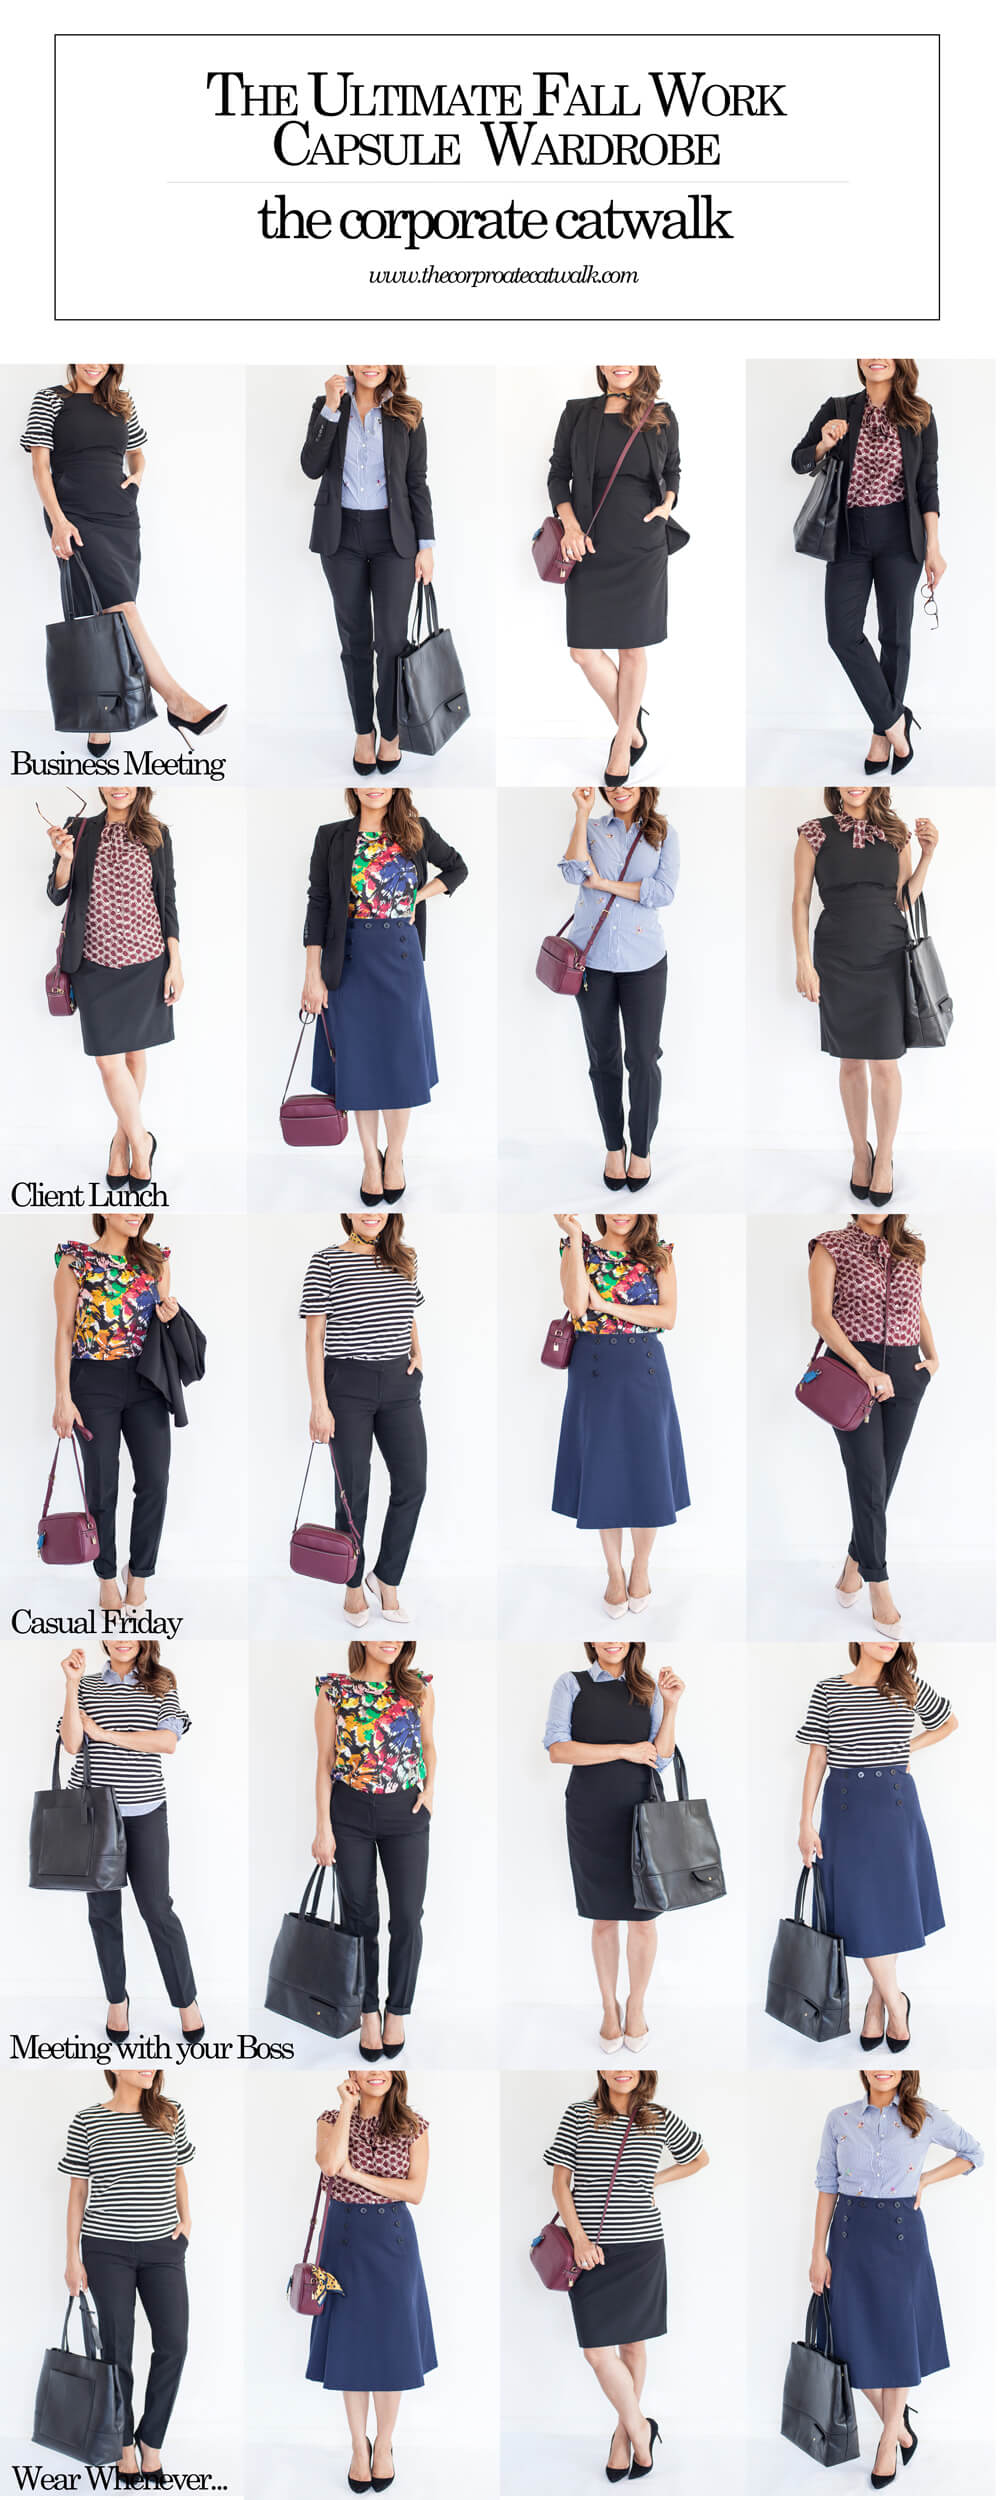 9aedd6ee8b8e The Ultimate Fall Work Capsule Wardrobe What to wear to Work Outfit Ideas  for Work Corporate Catwalk